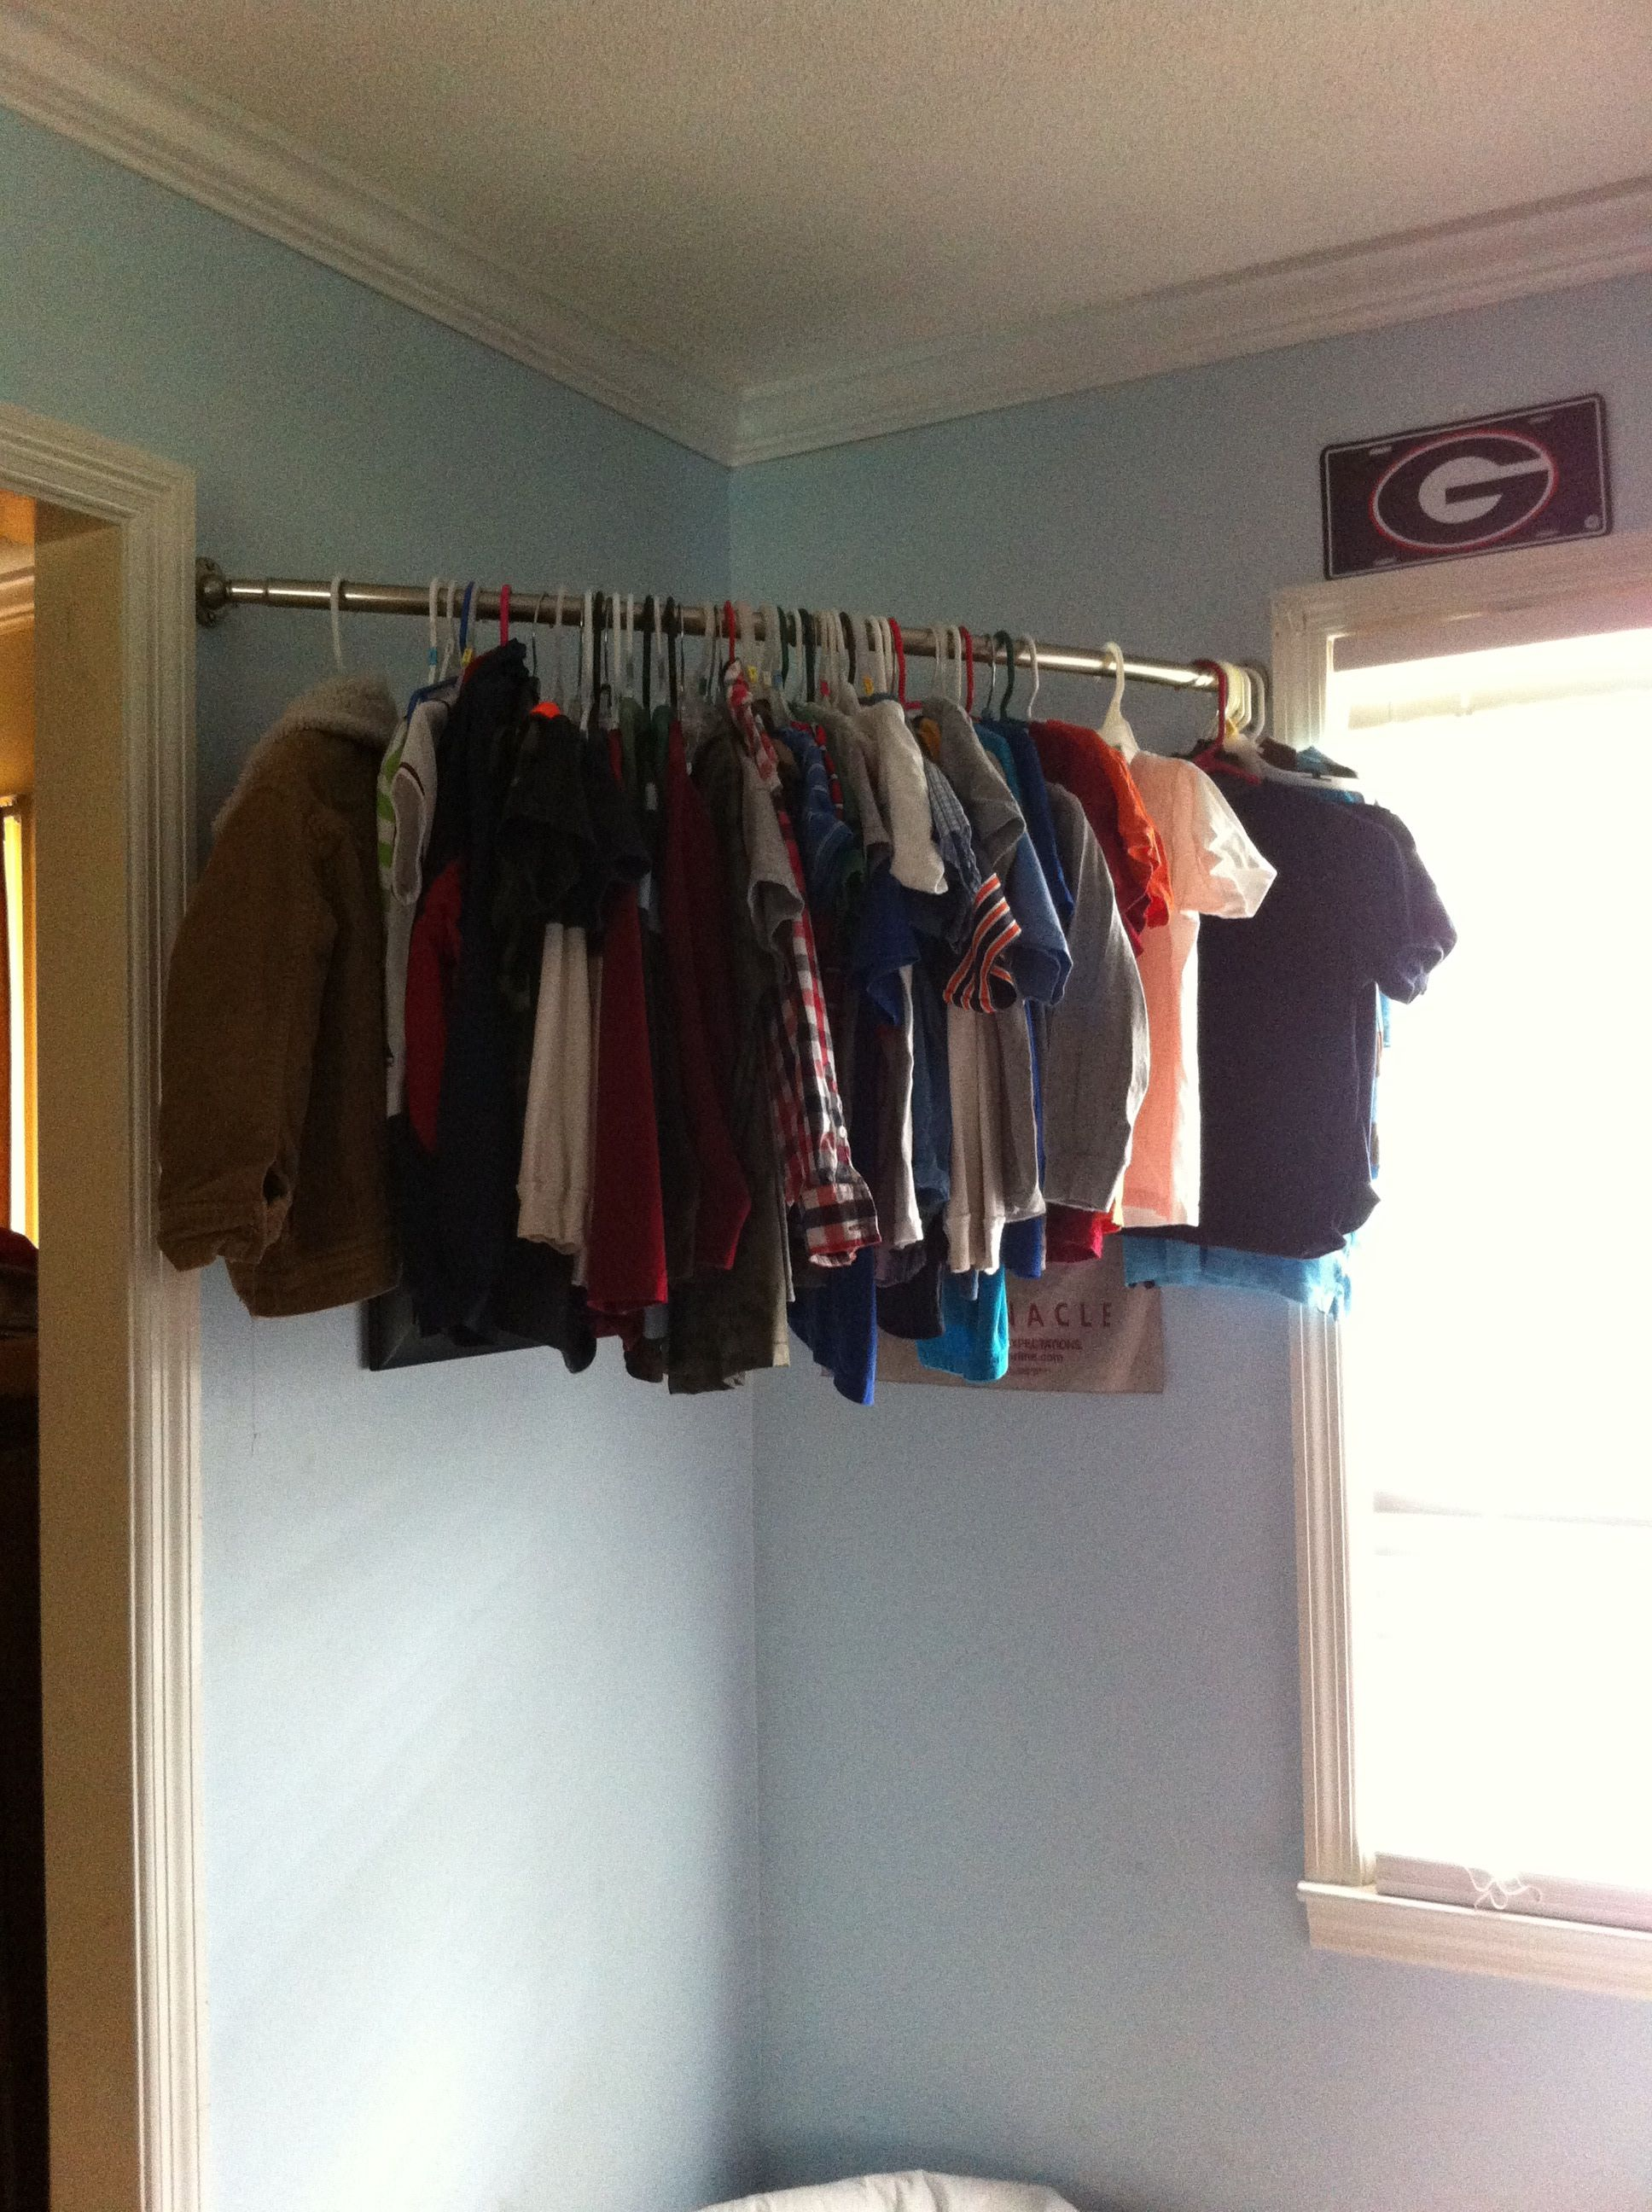 Curved Closet Rod Interesting No Closet I Used A Curved Shower Rod For My Son's Clothes Design Inspiration